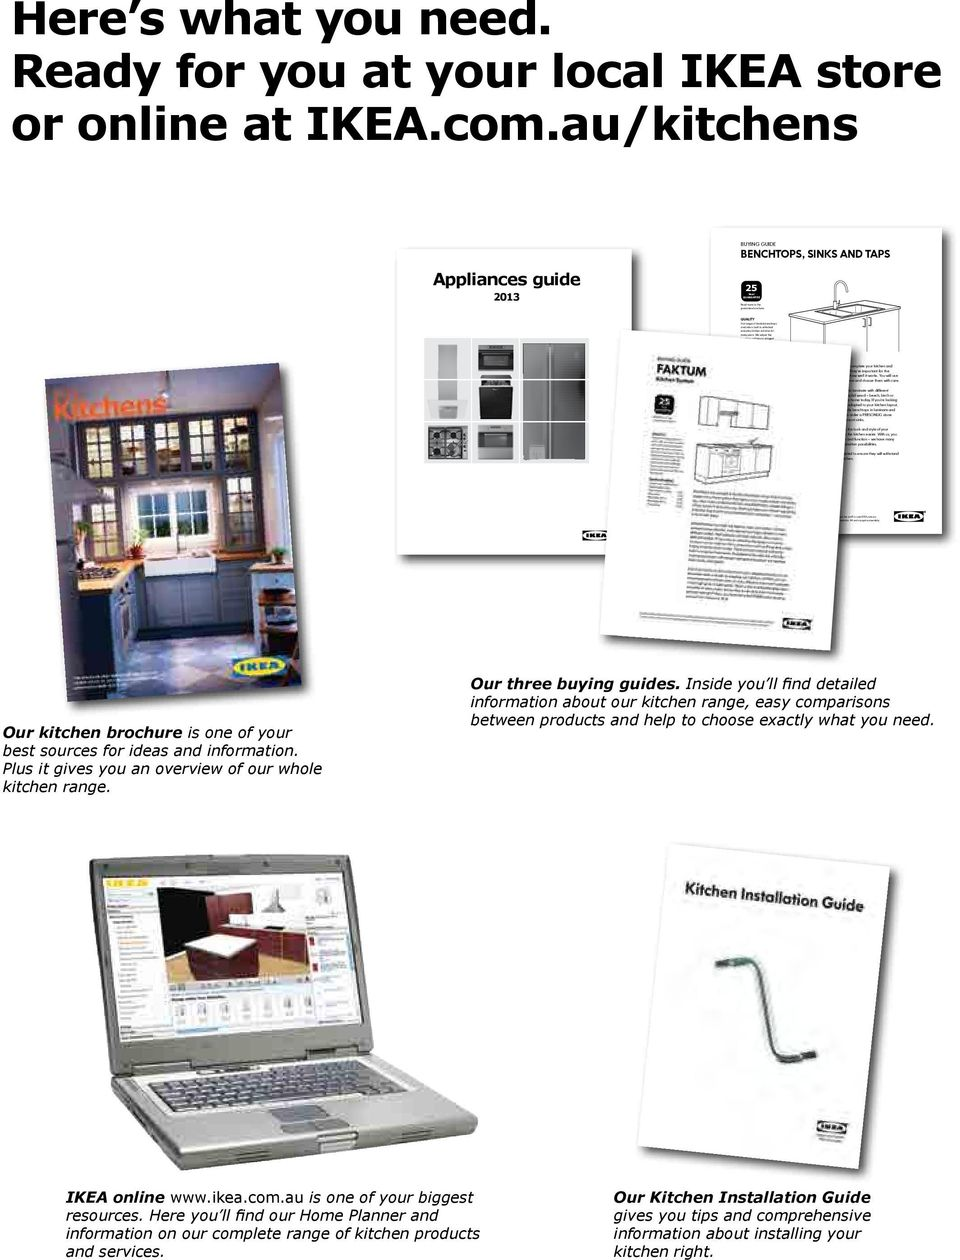 4 steps to your new kitchen Planning Guide - PDF on ikea floor planner, home work planner, ikea bedroom planner, ikea closet planner, ikea bathroom planner, ikea keuken planner, ikea furniture planner, ikea desk planner, ikea basement planner, ikea besta planner, custom moleskine planner, ikea storage planner, ikea office planner, ikea laundry planner, ikea wardrobe planner, home building planner, ikea media planner, home depot home planner, ikea 3d planner,